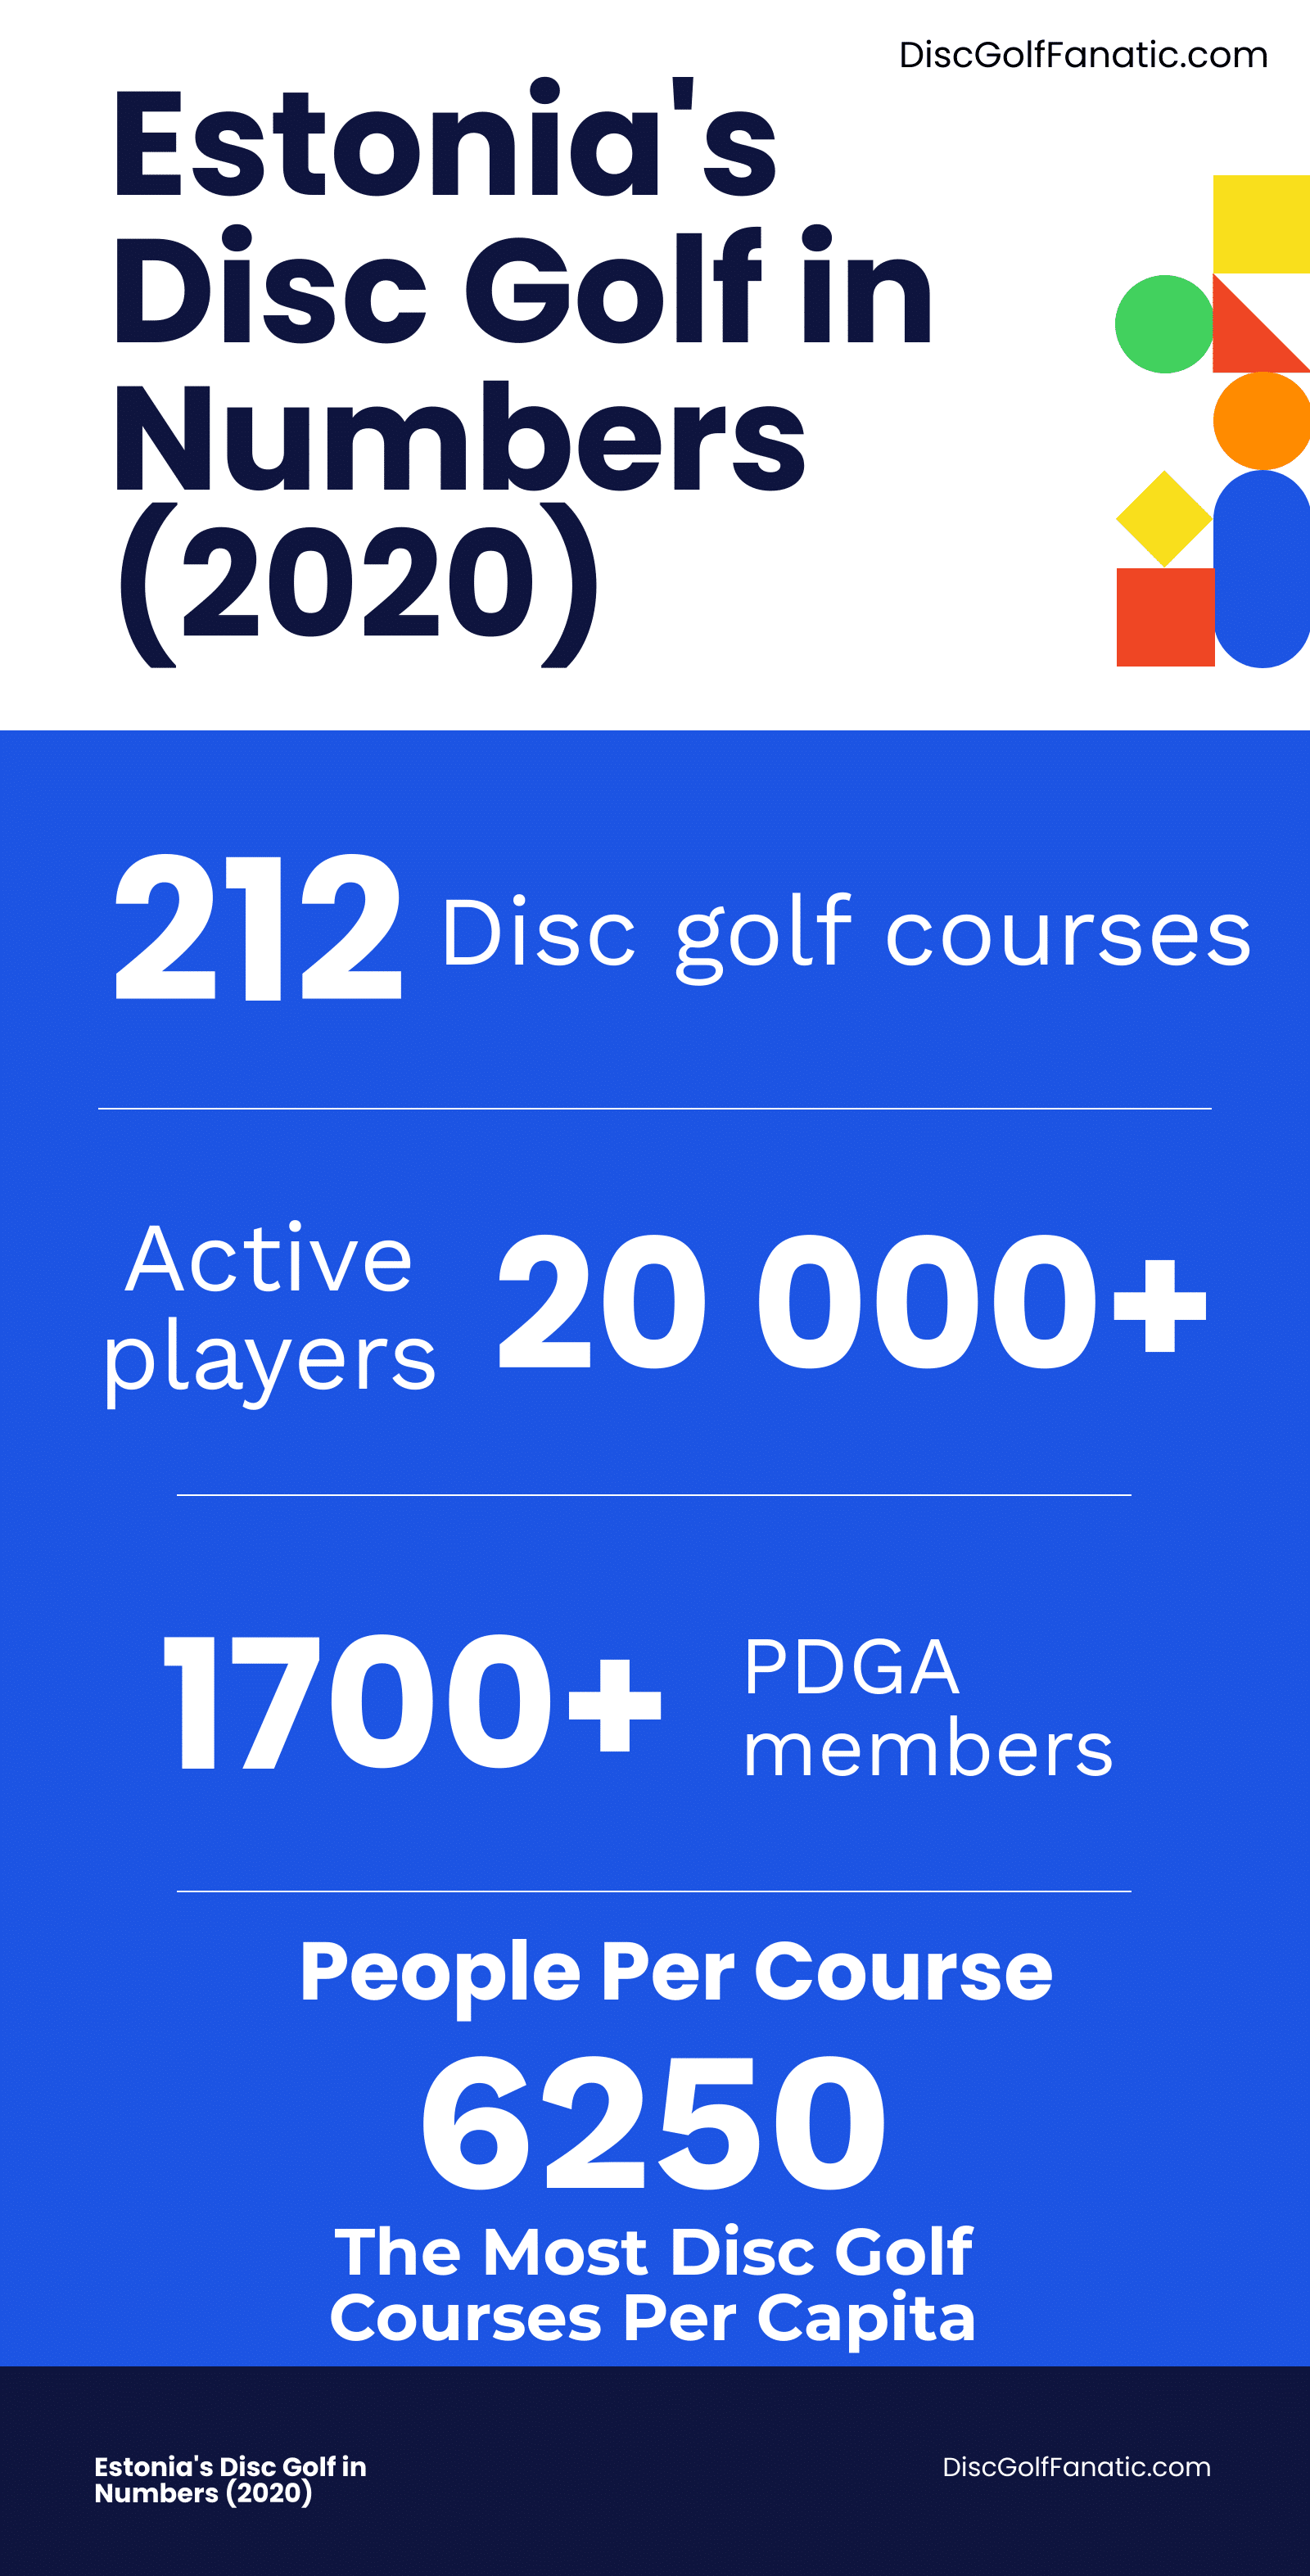 Estonia's Disc Golf In Numbers, 2020 edition